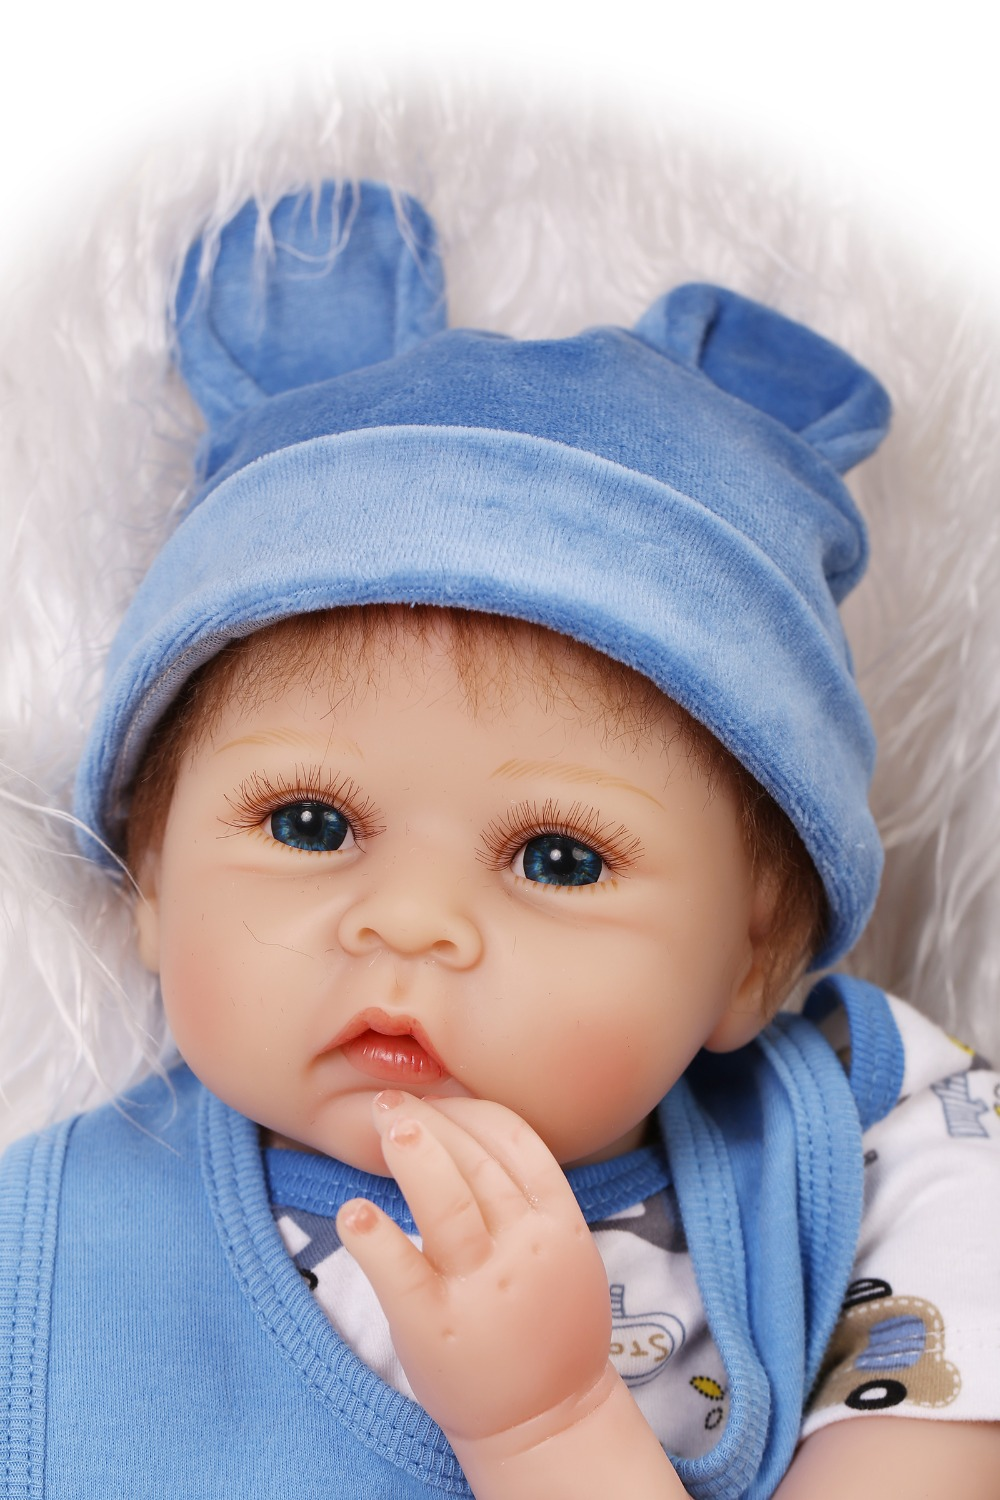 doll alive reborn doll with soft real gentle touch 22inch lovely design silicone vinyl lifelike newborn baby Christmas presents new design hot selling lifelike reborn toddler doll soft silicone vinyl real gentle touch 28inches